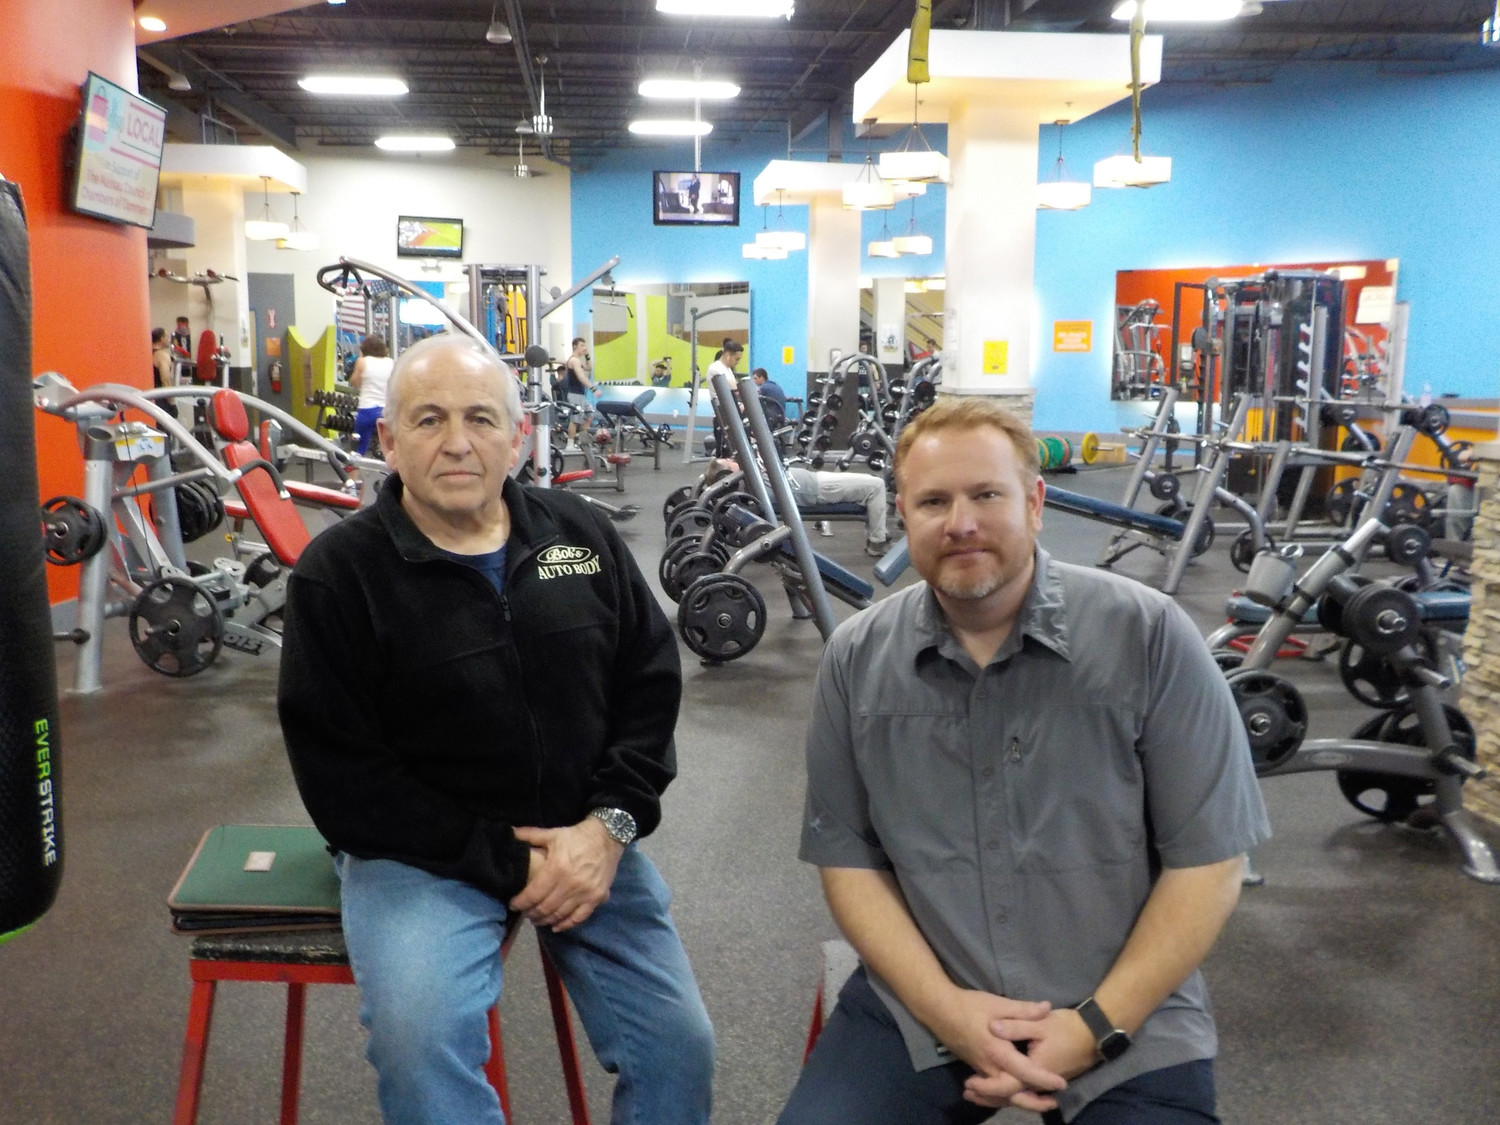 Mike Hawksby, right, who owns ROK Health & Fitness with Robert D'Urso, discovered neurotherapy after he sustained a head injury in a car crash. He is hoping to bring the practice into his gym in the near future.